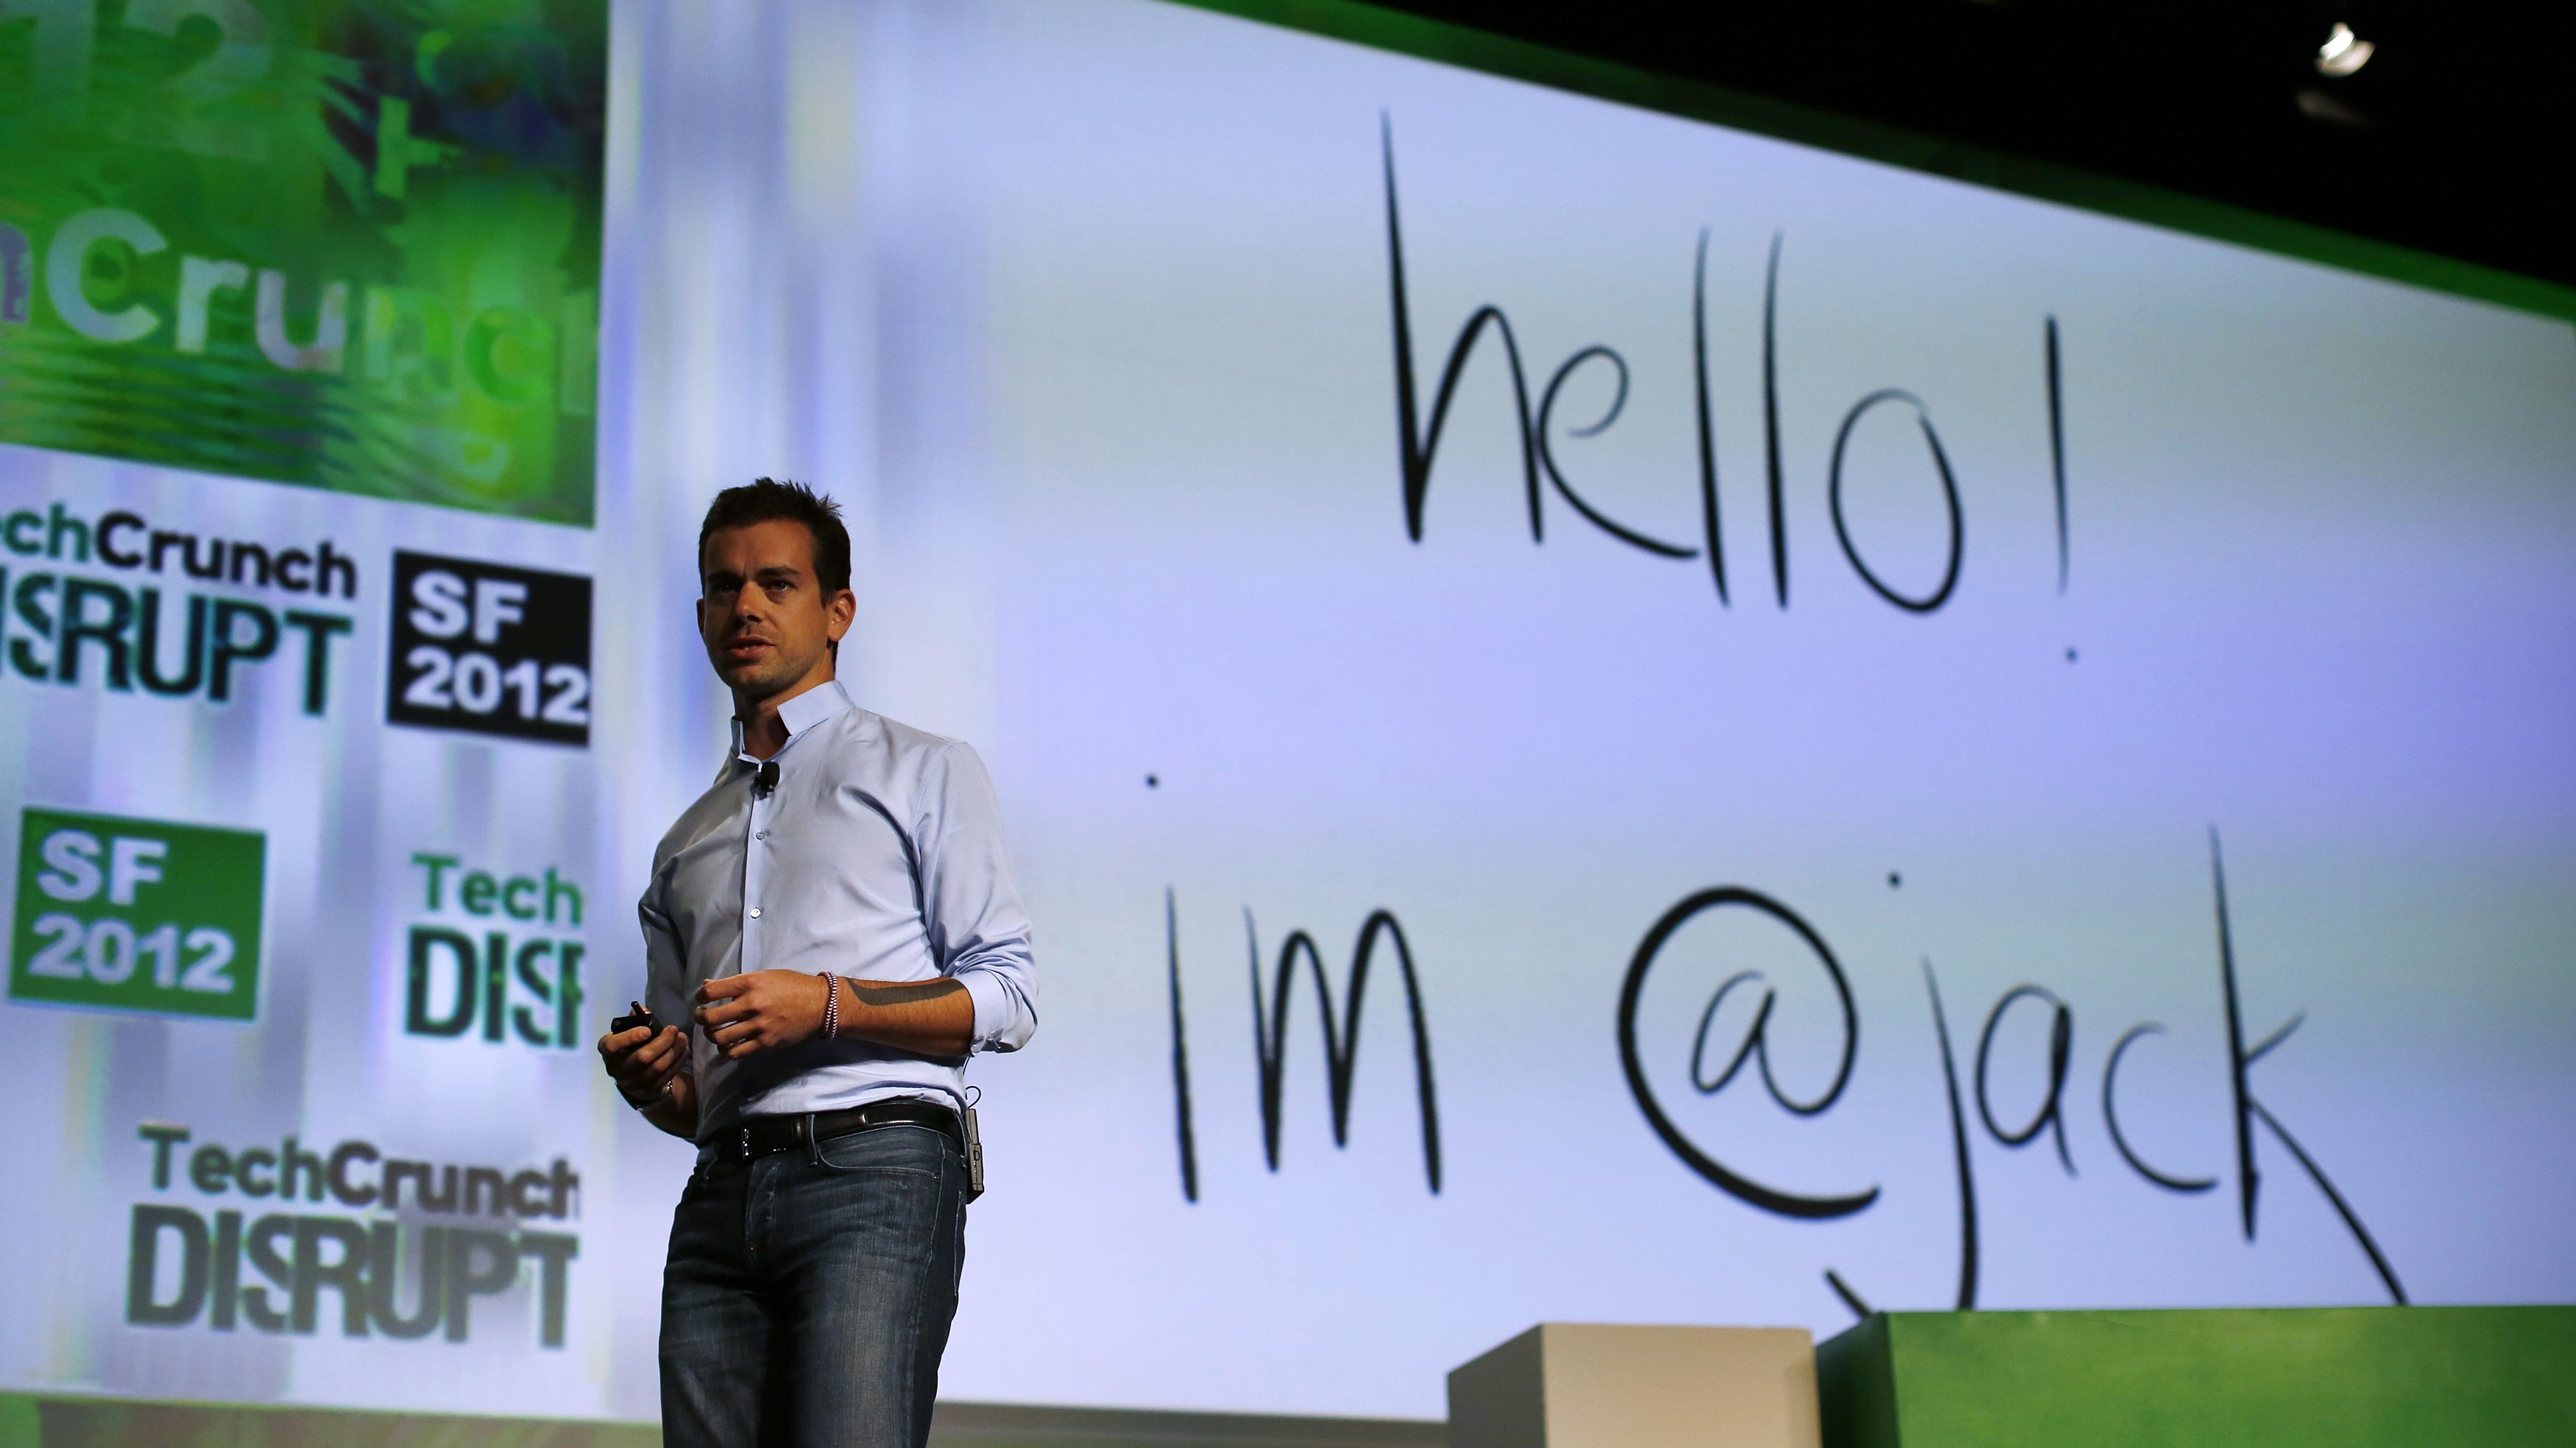 Jack Dorsey, founder of Square and Twitter, speaks on stage during day one of TechCrunch Disrupt SF 2012 event at the San Francisco Design Center Concourse in San Francisco, California September 10, 2012.